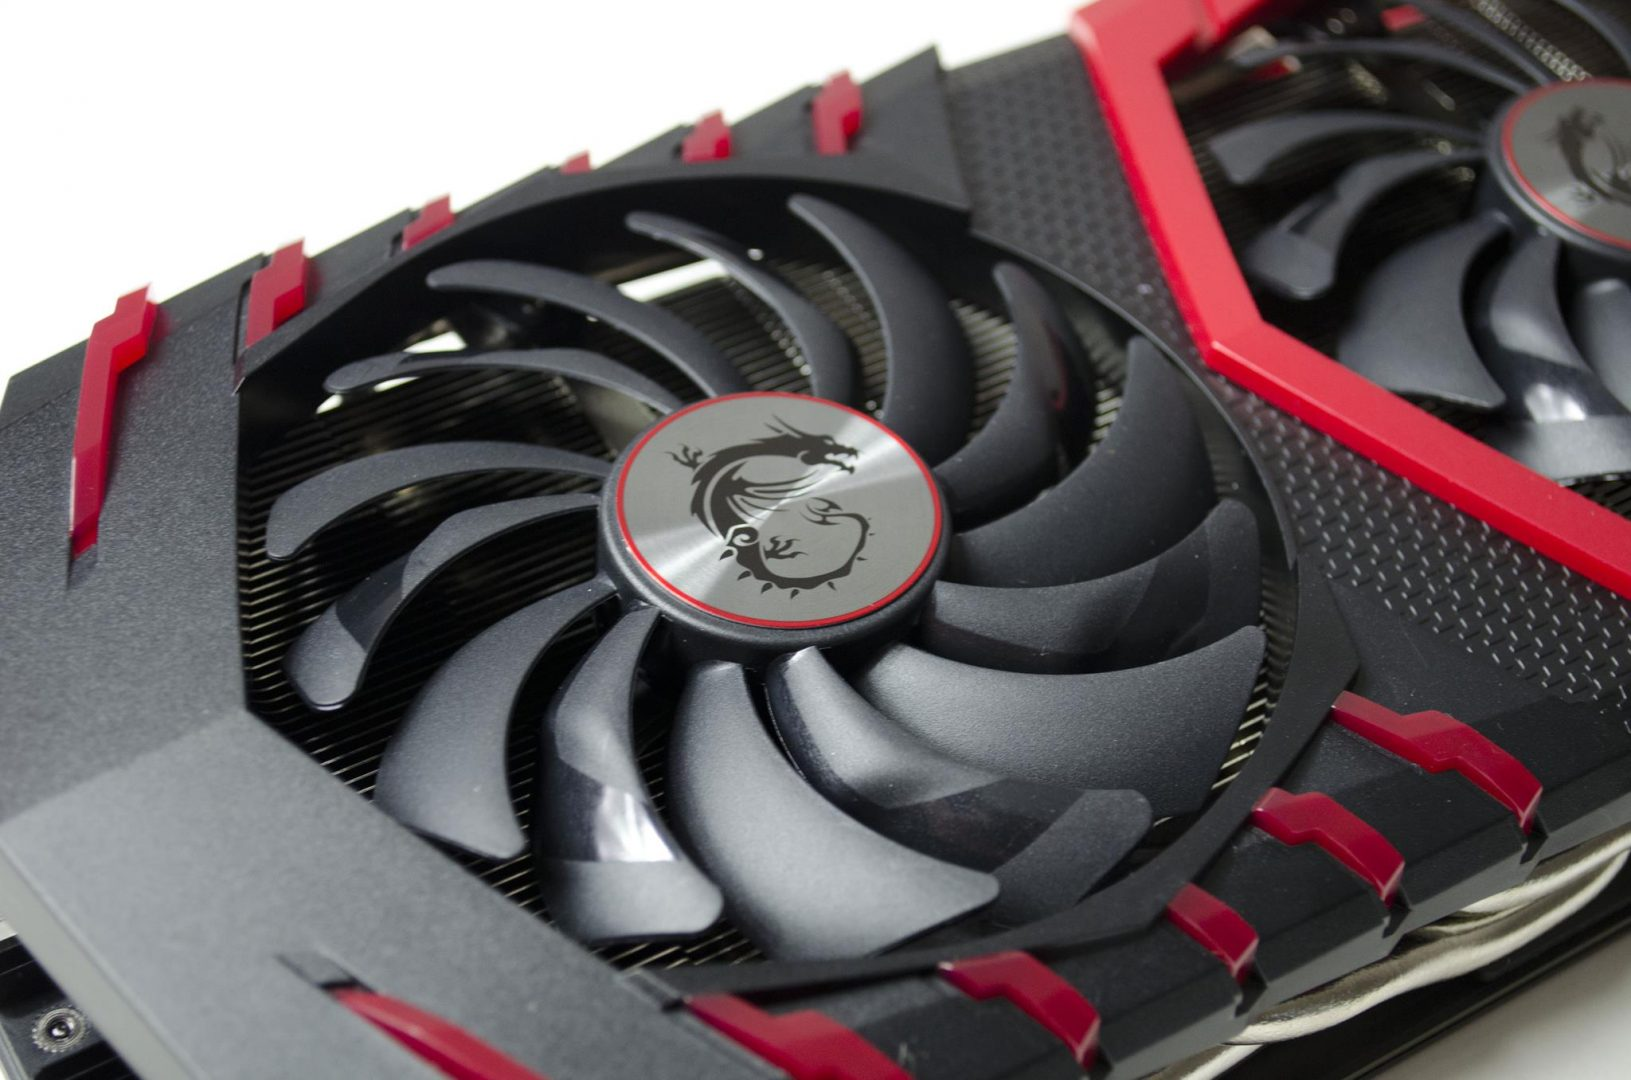 MSI geforce GTX 1070 gaming x 8gb gpu review_8